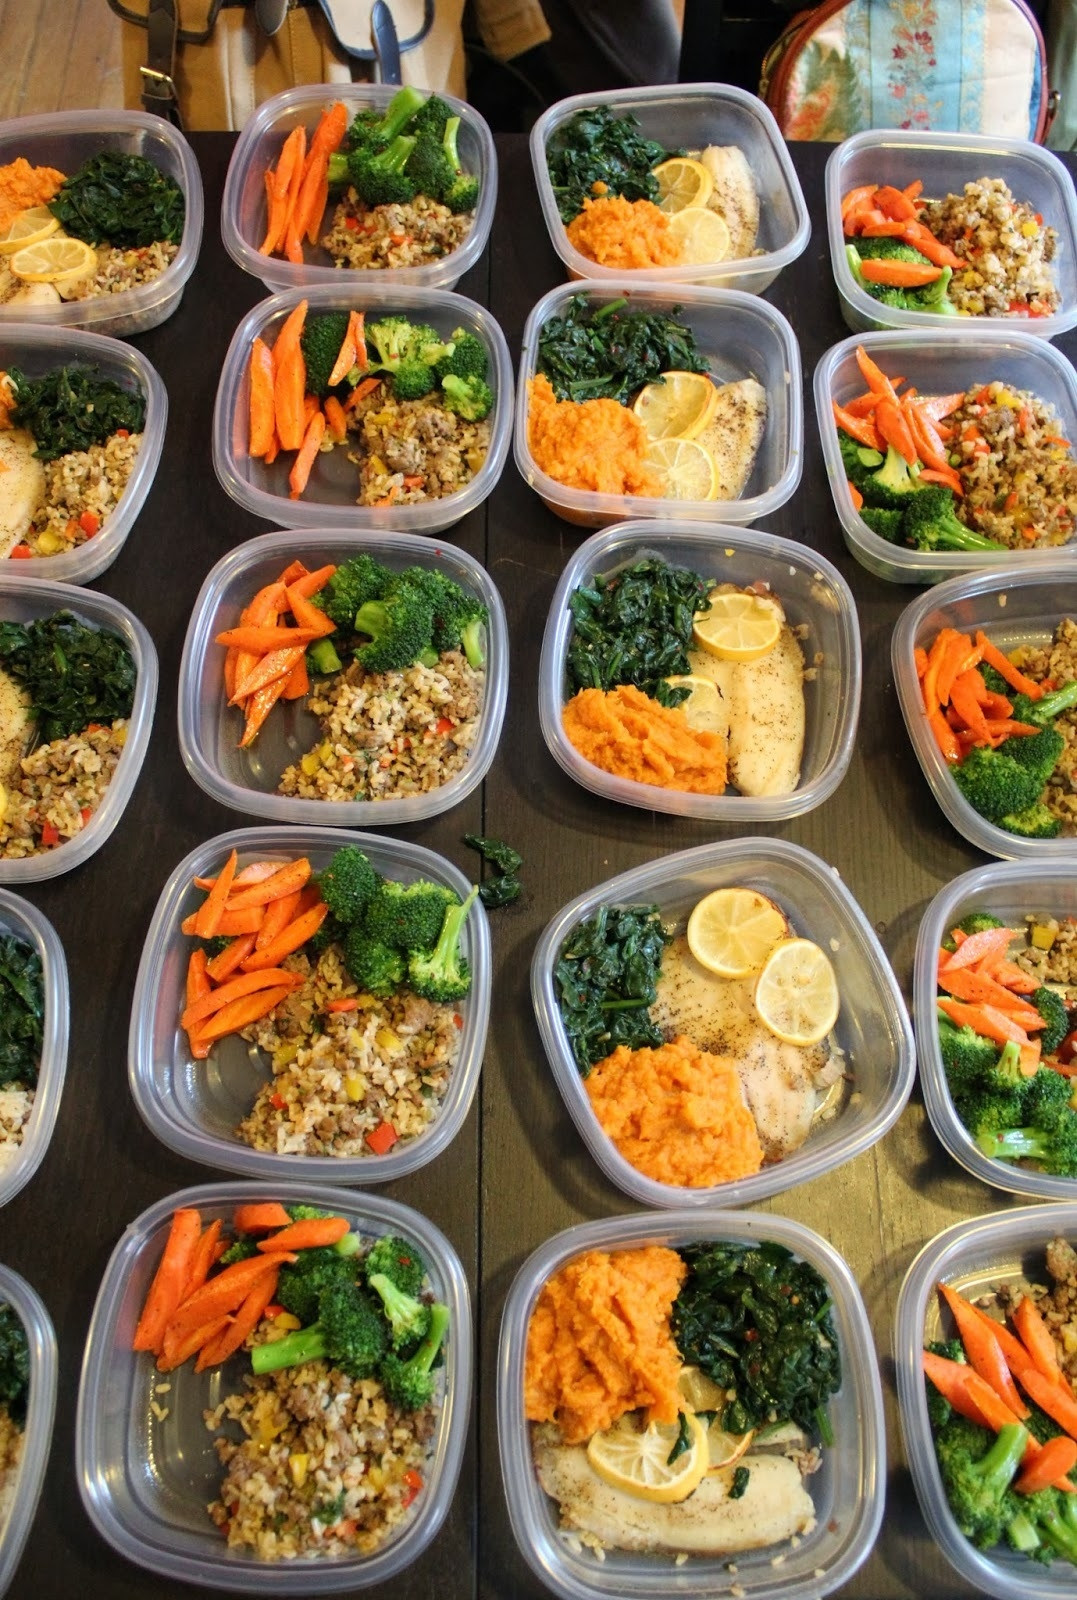 Healthy Meal Prep Snacks  Healthy Meal Prep Ideas For The WeekWritings and Papers